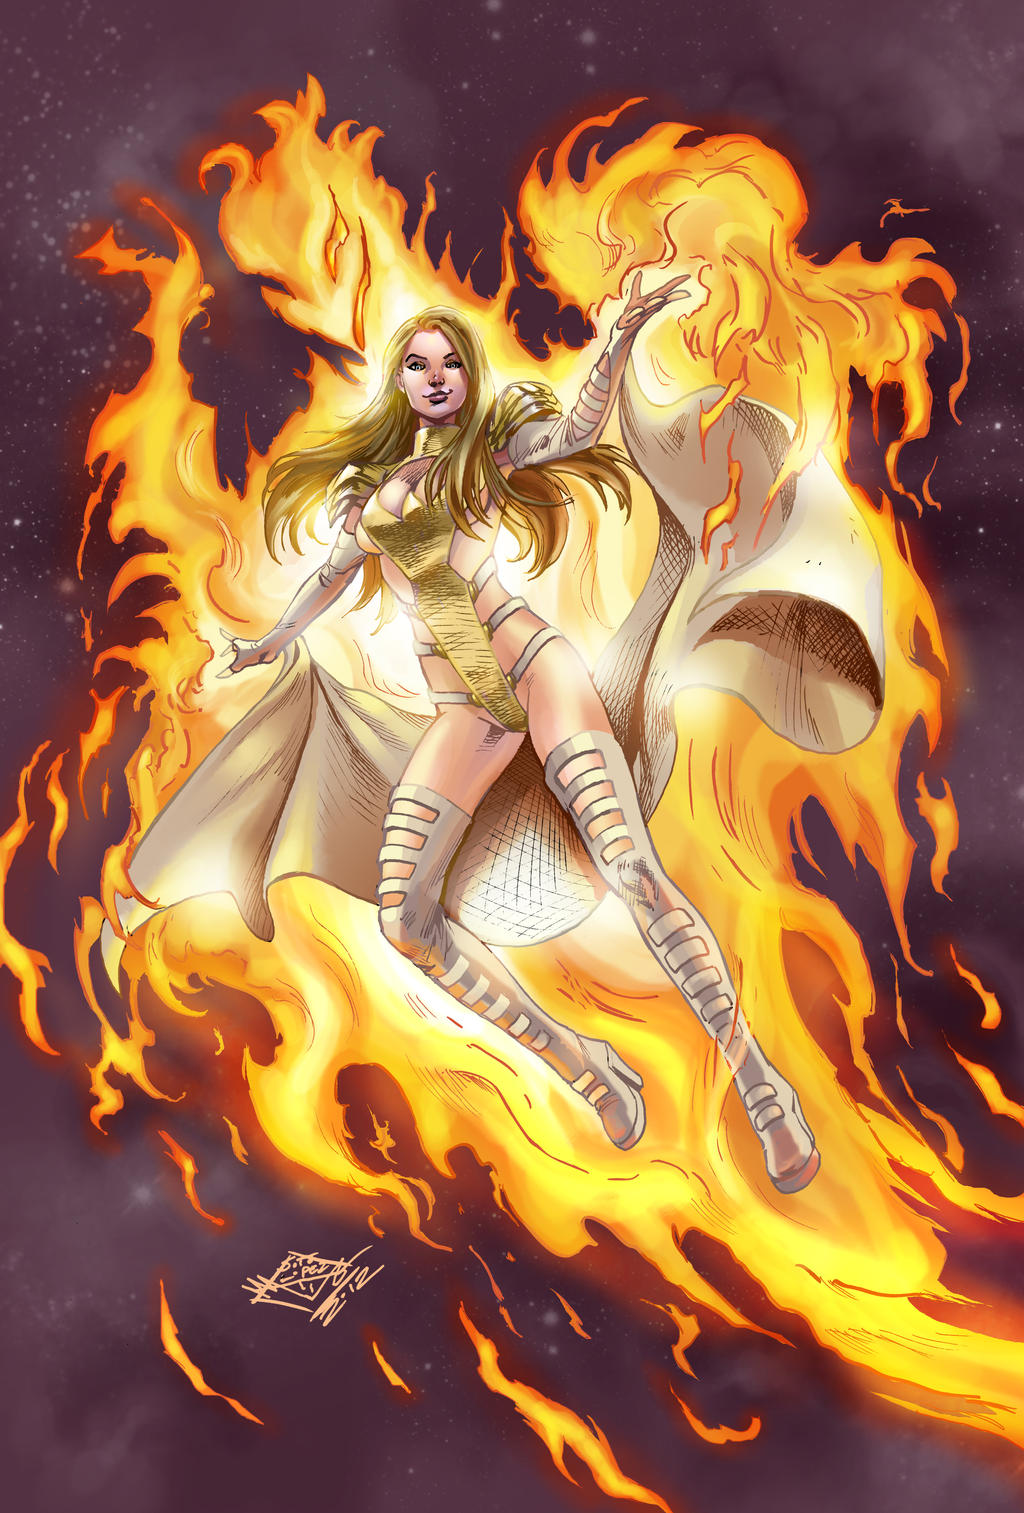 Emma Frost / White Queen (PHOENIX FIVE Version) by sagaman